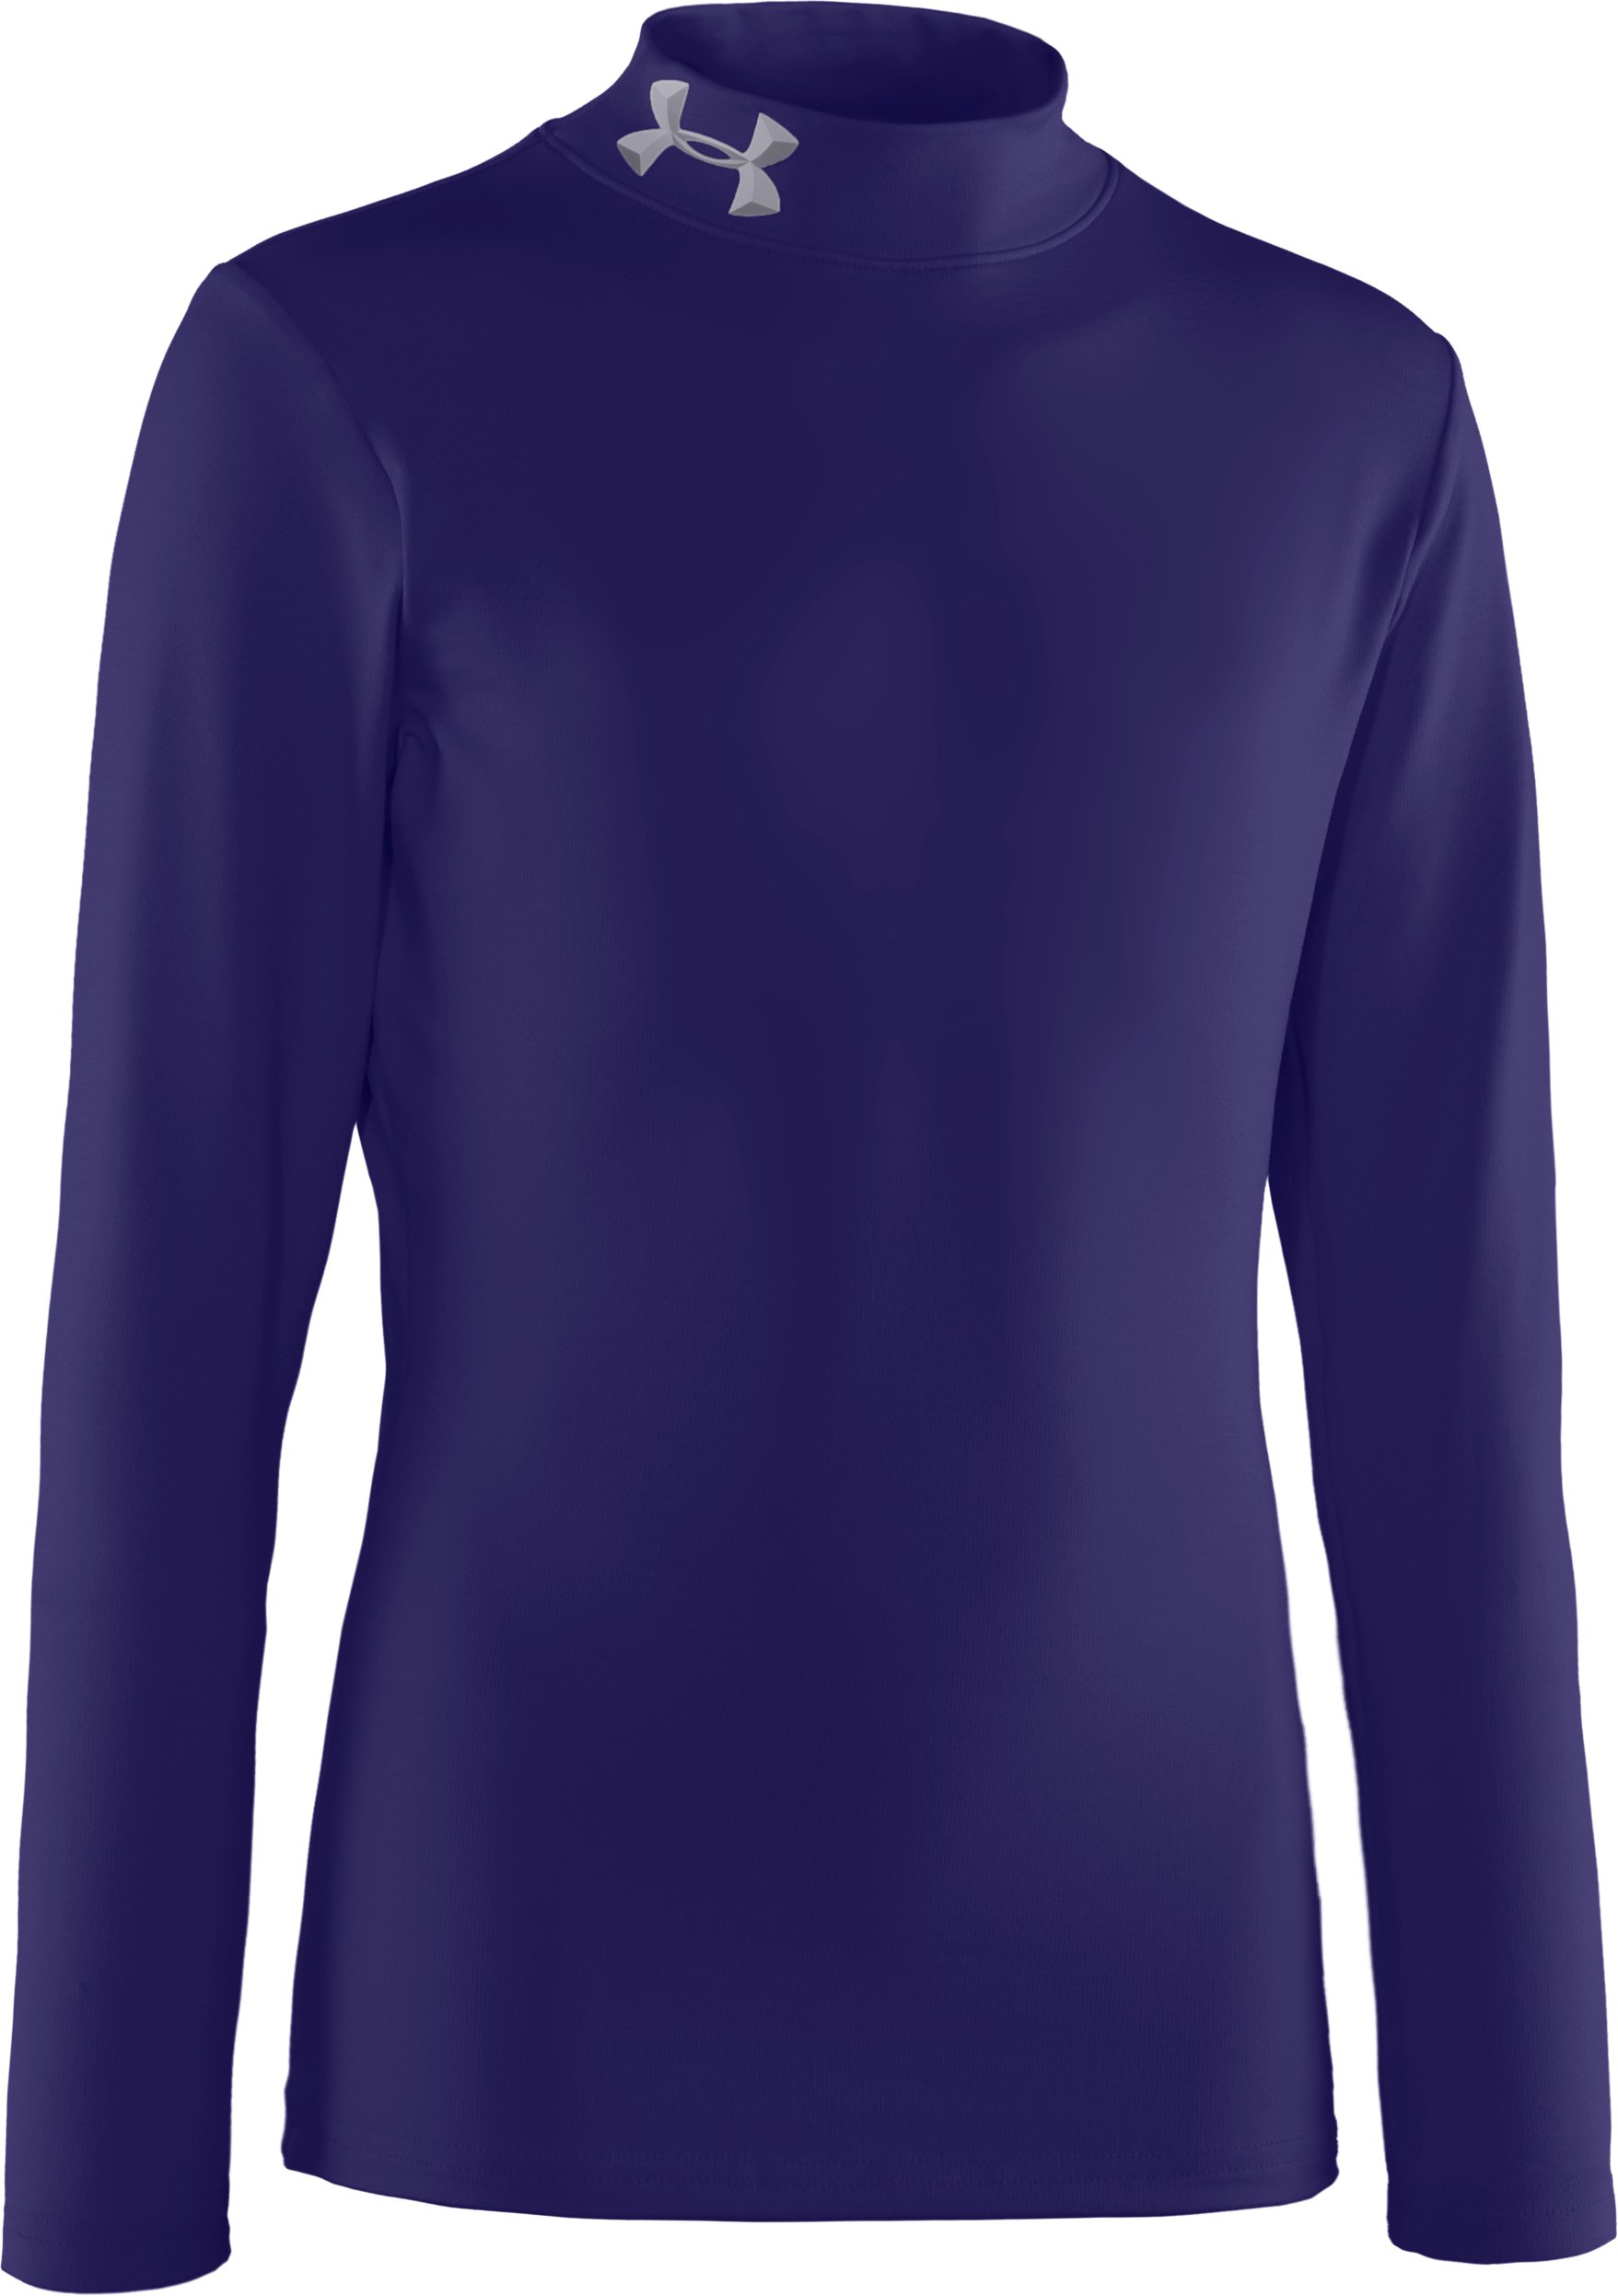 Boys' ColdGear® Evo Fitted Baselayer Mock, Midnight Navy, zoomed image